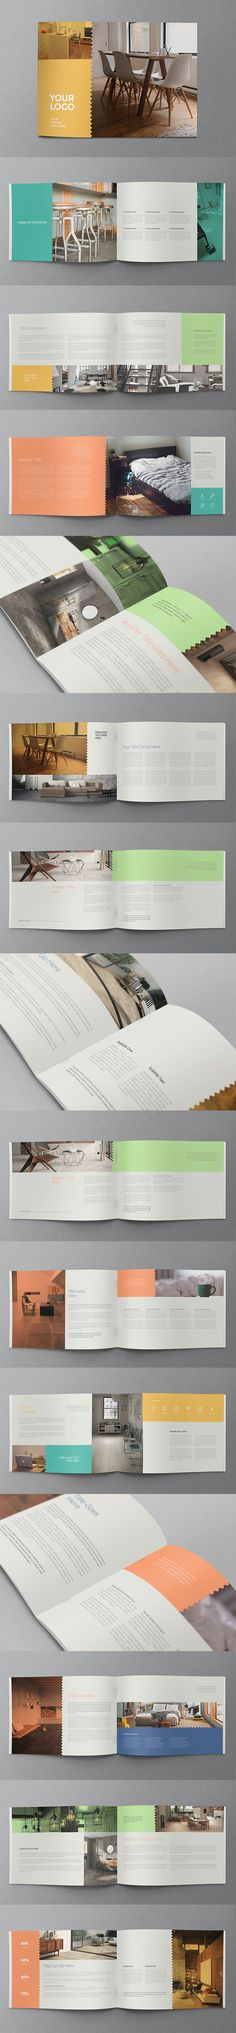 Clean Colorful Brochure. Download here: http://graphicriver.net/item/clean-colorful-brochure/11770727?ref=abradesign #brochure #design